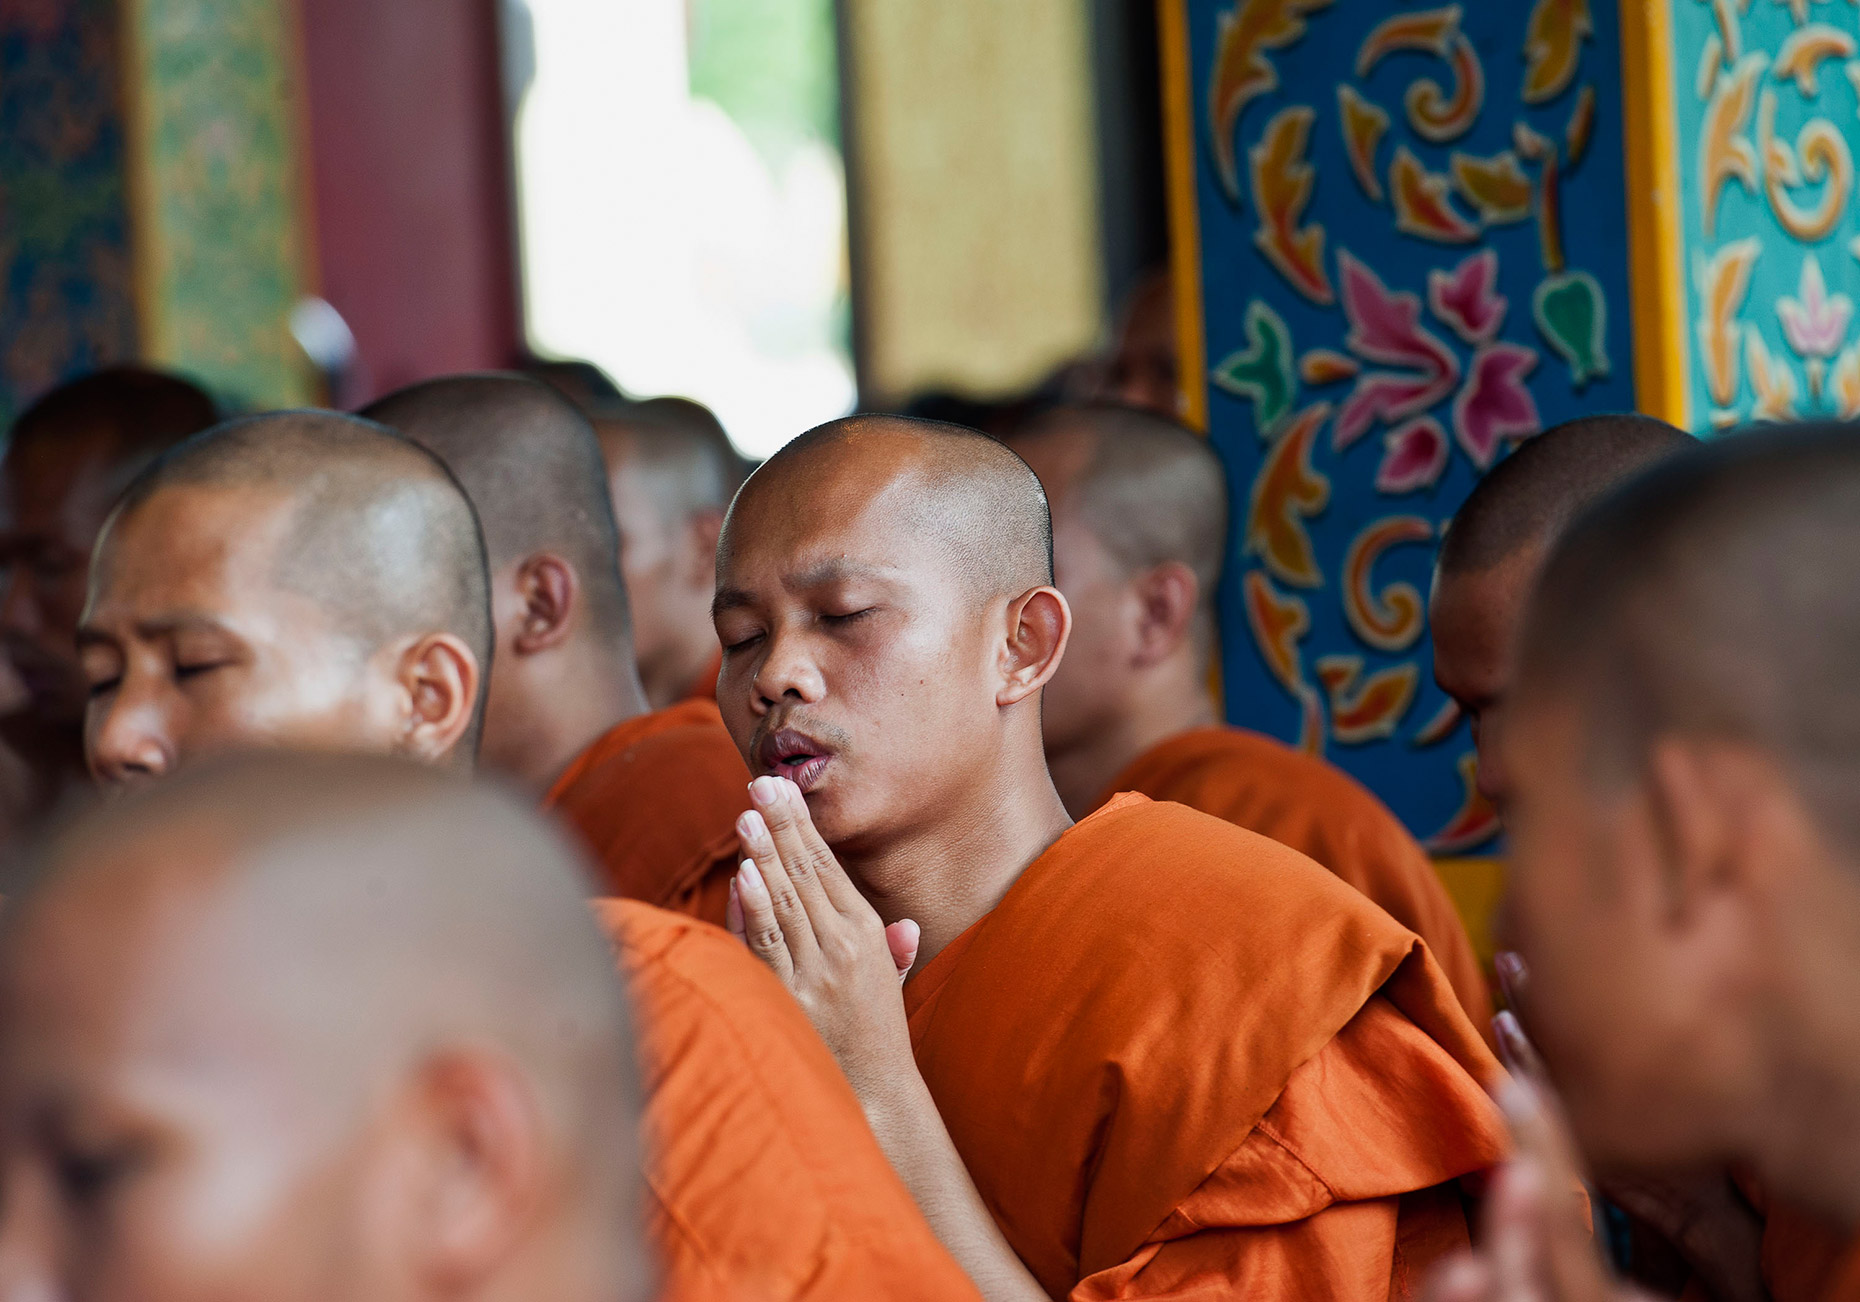 TRA_PhotoReporters_monks-praying-during-Visak-Bochea-Day_Cambodia